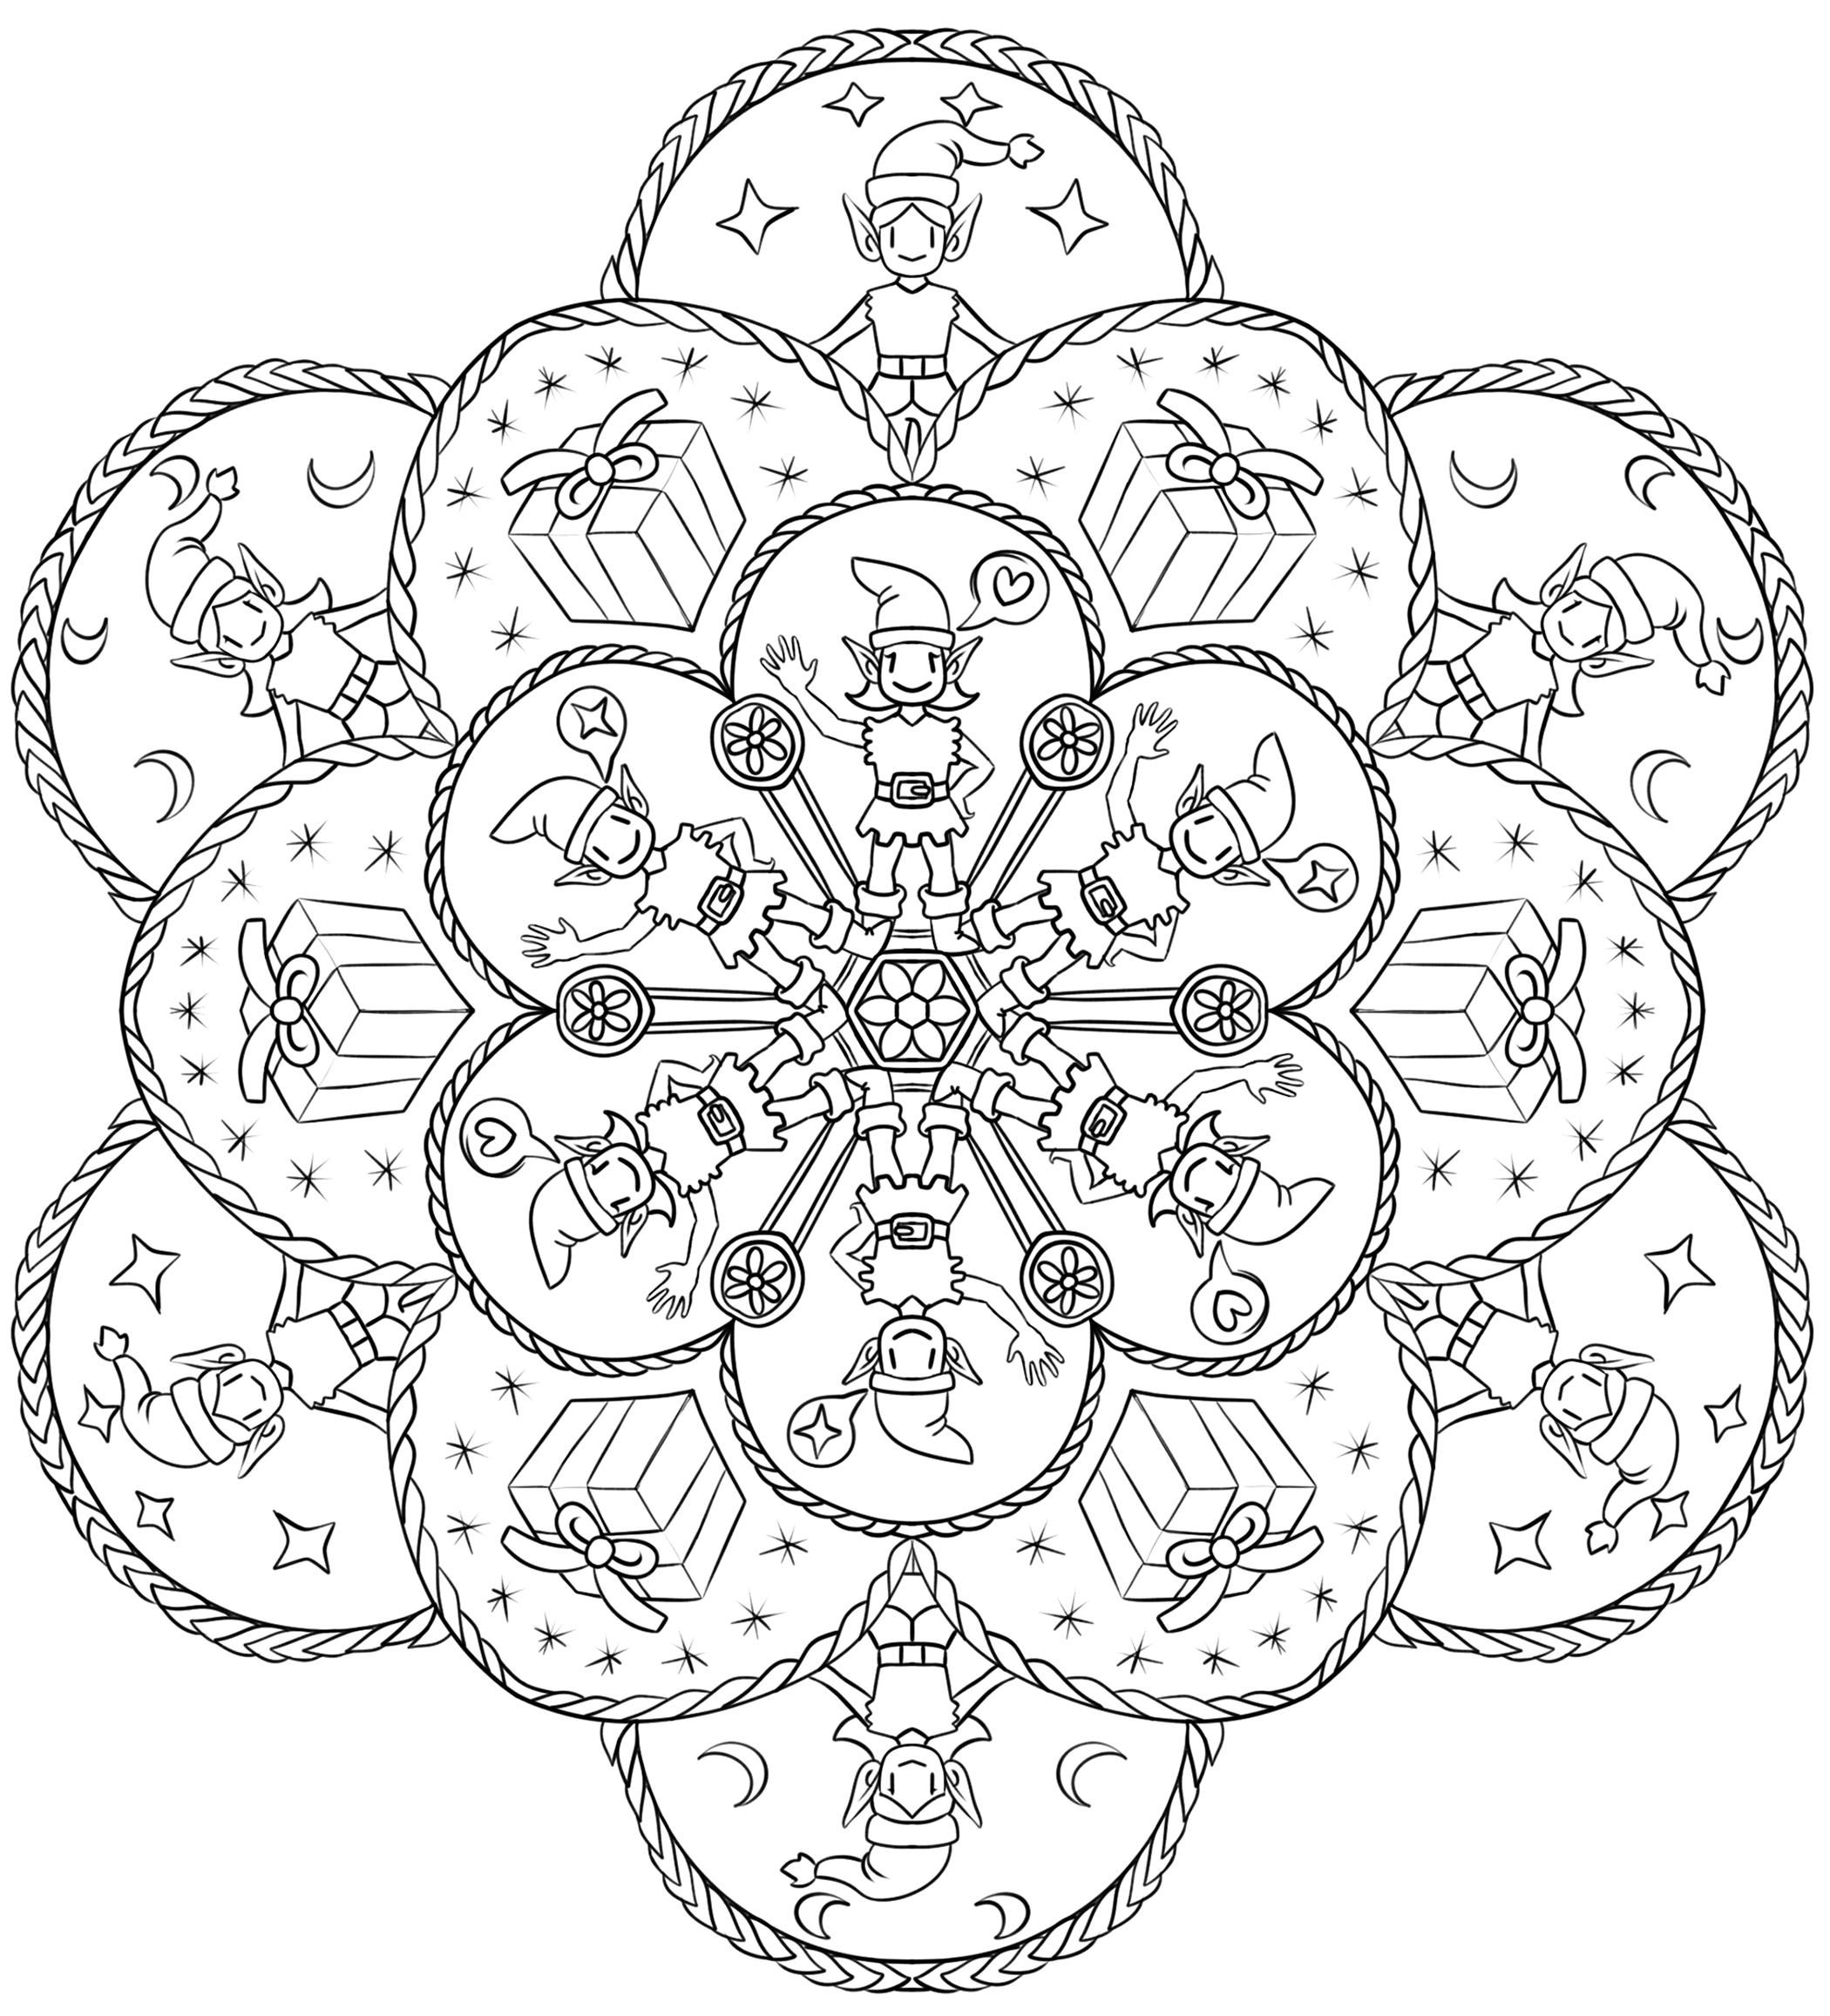 christmas mandala coloring pages christmas mandalas coloring 18 funnycrafts christmas coloring mandala pages